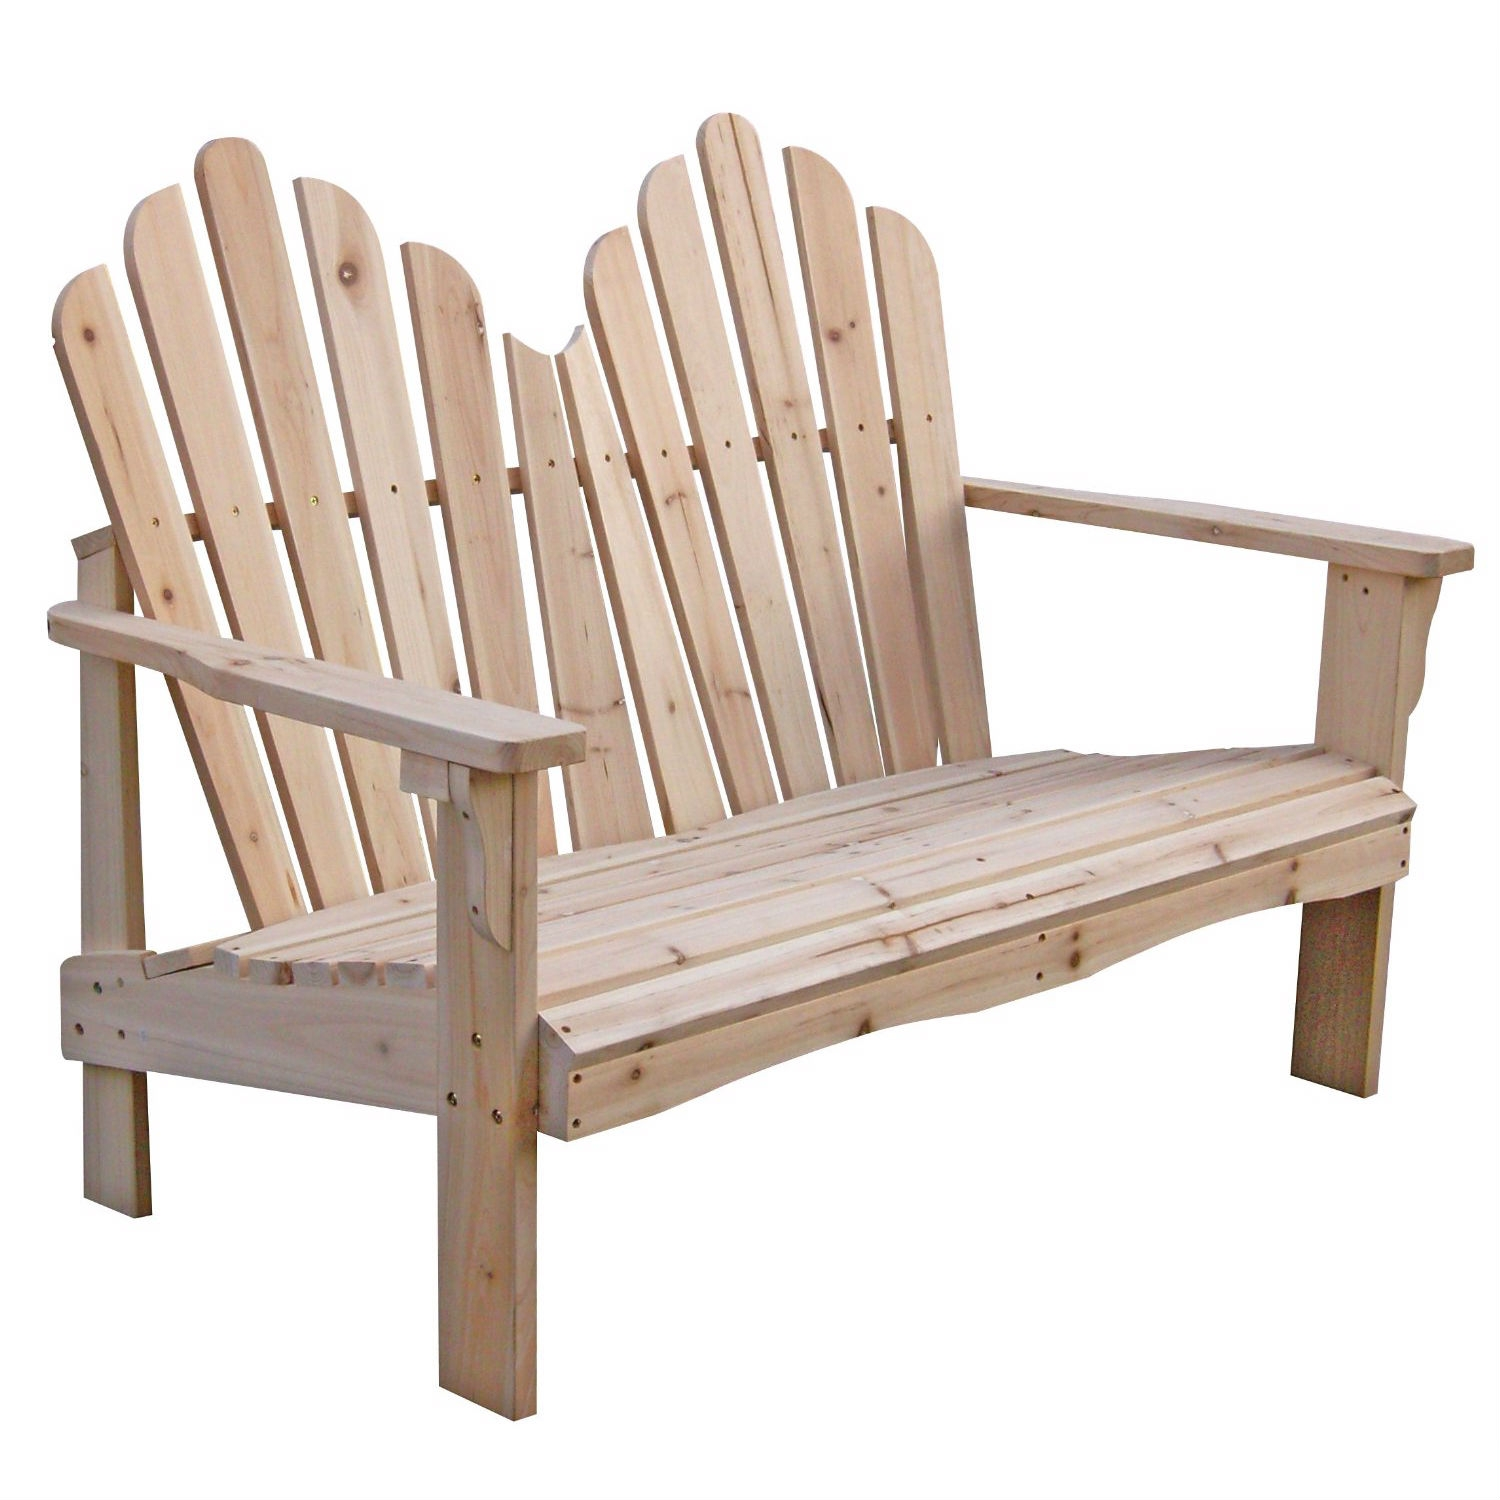 Charmant Cedar Wood Outdoor Patio 2 Seat Adirondack Chair Style Loveseat